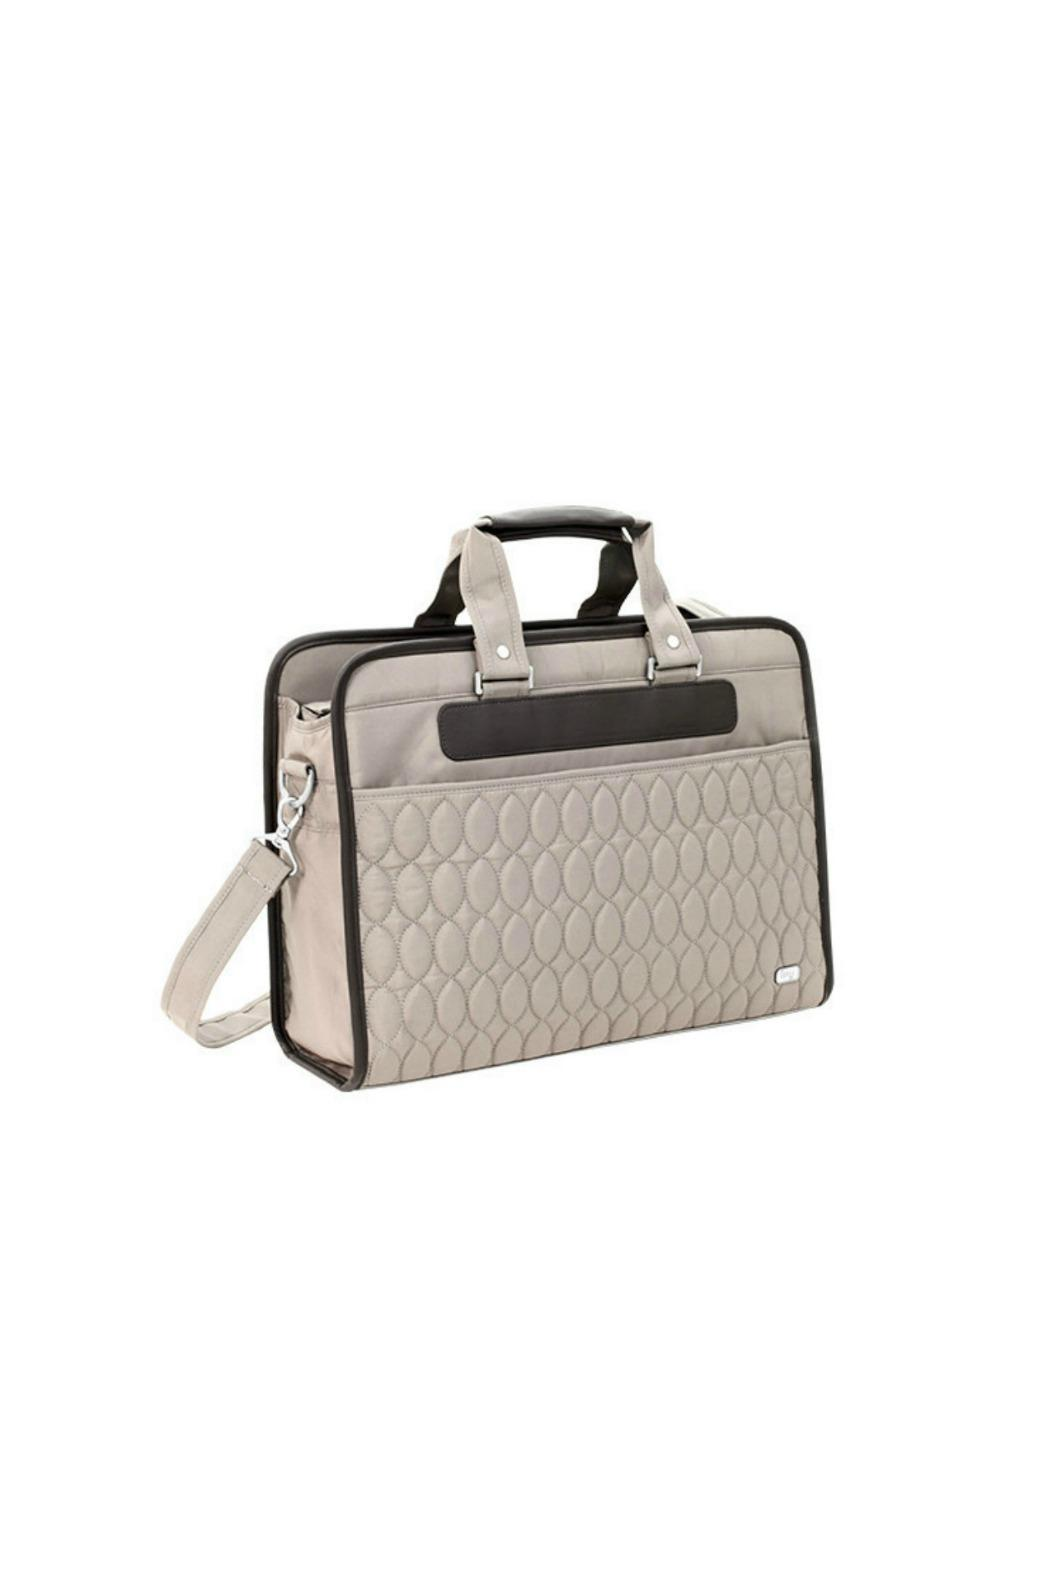 Chariot Travel Bag For Sale